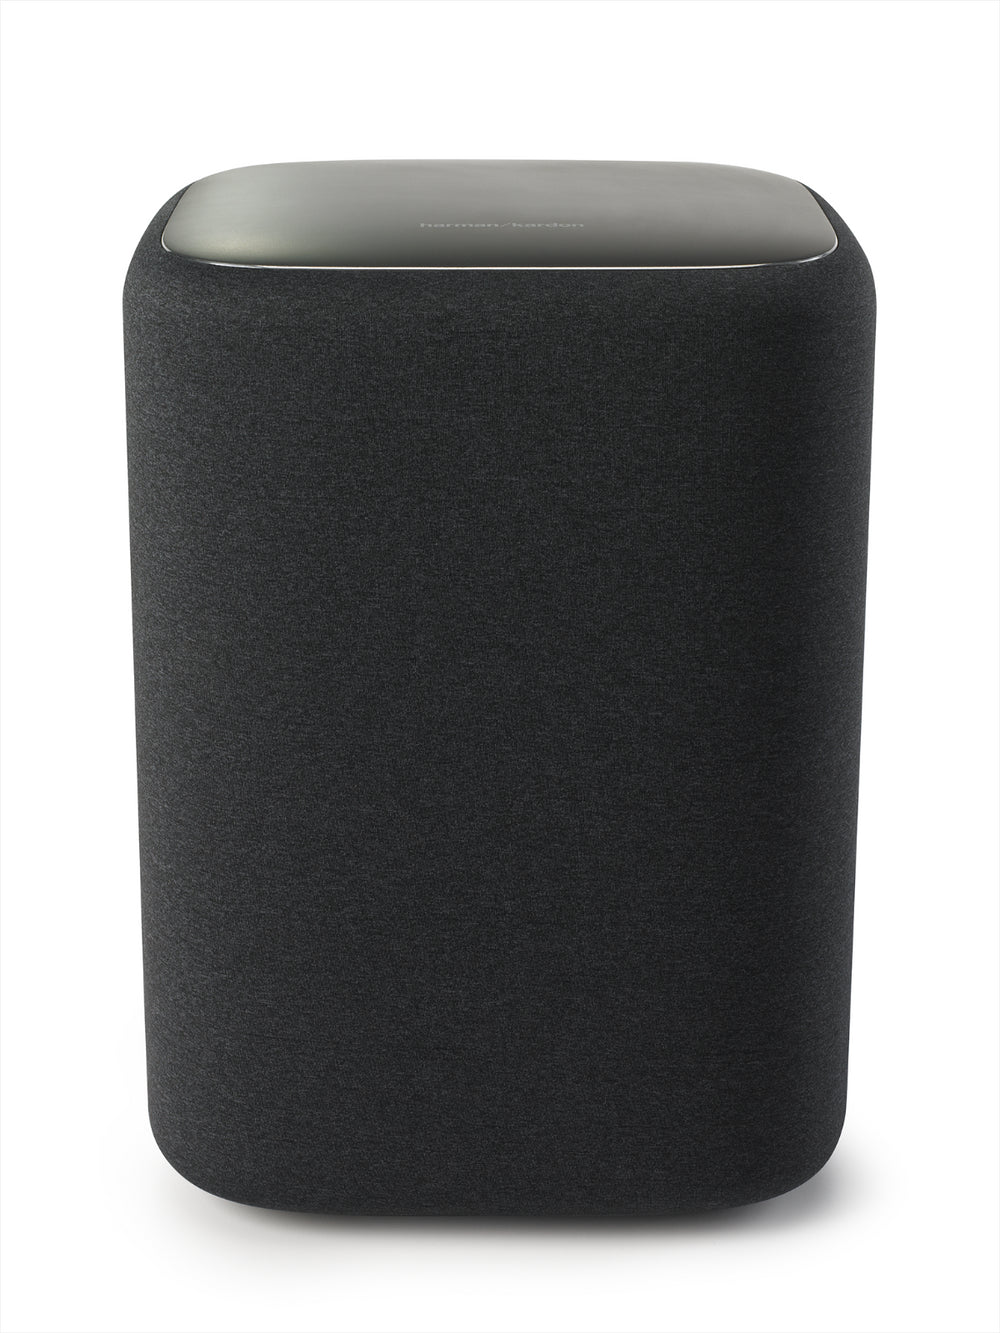 Harman Kardon Enchant Subwoofer - Graphite